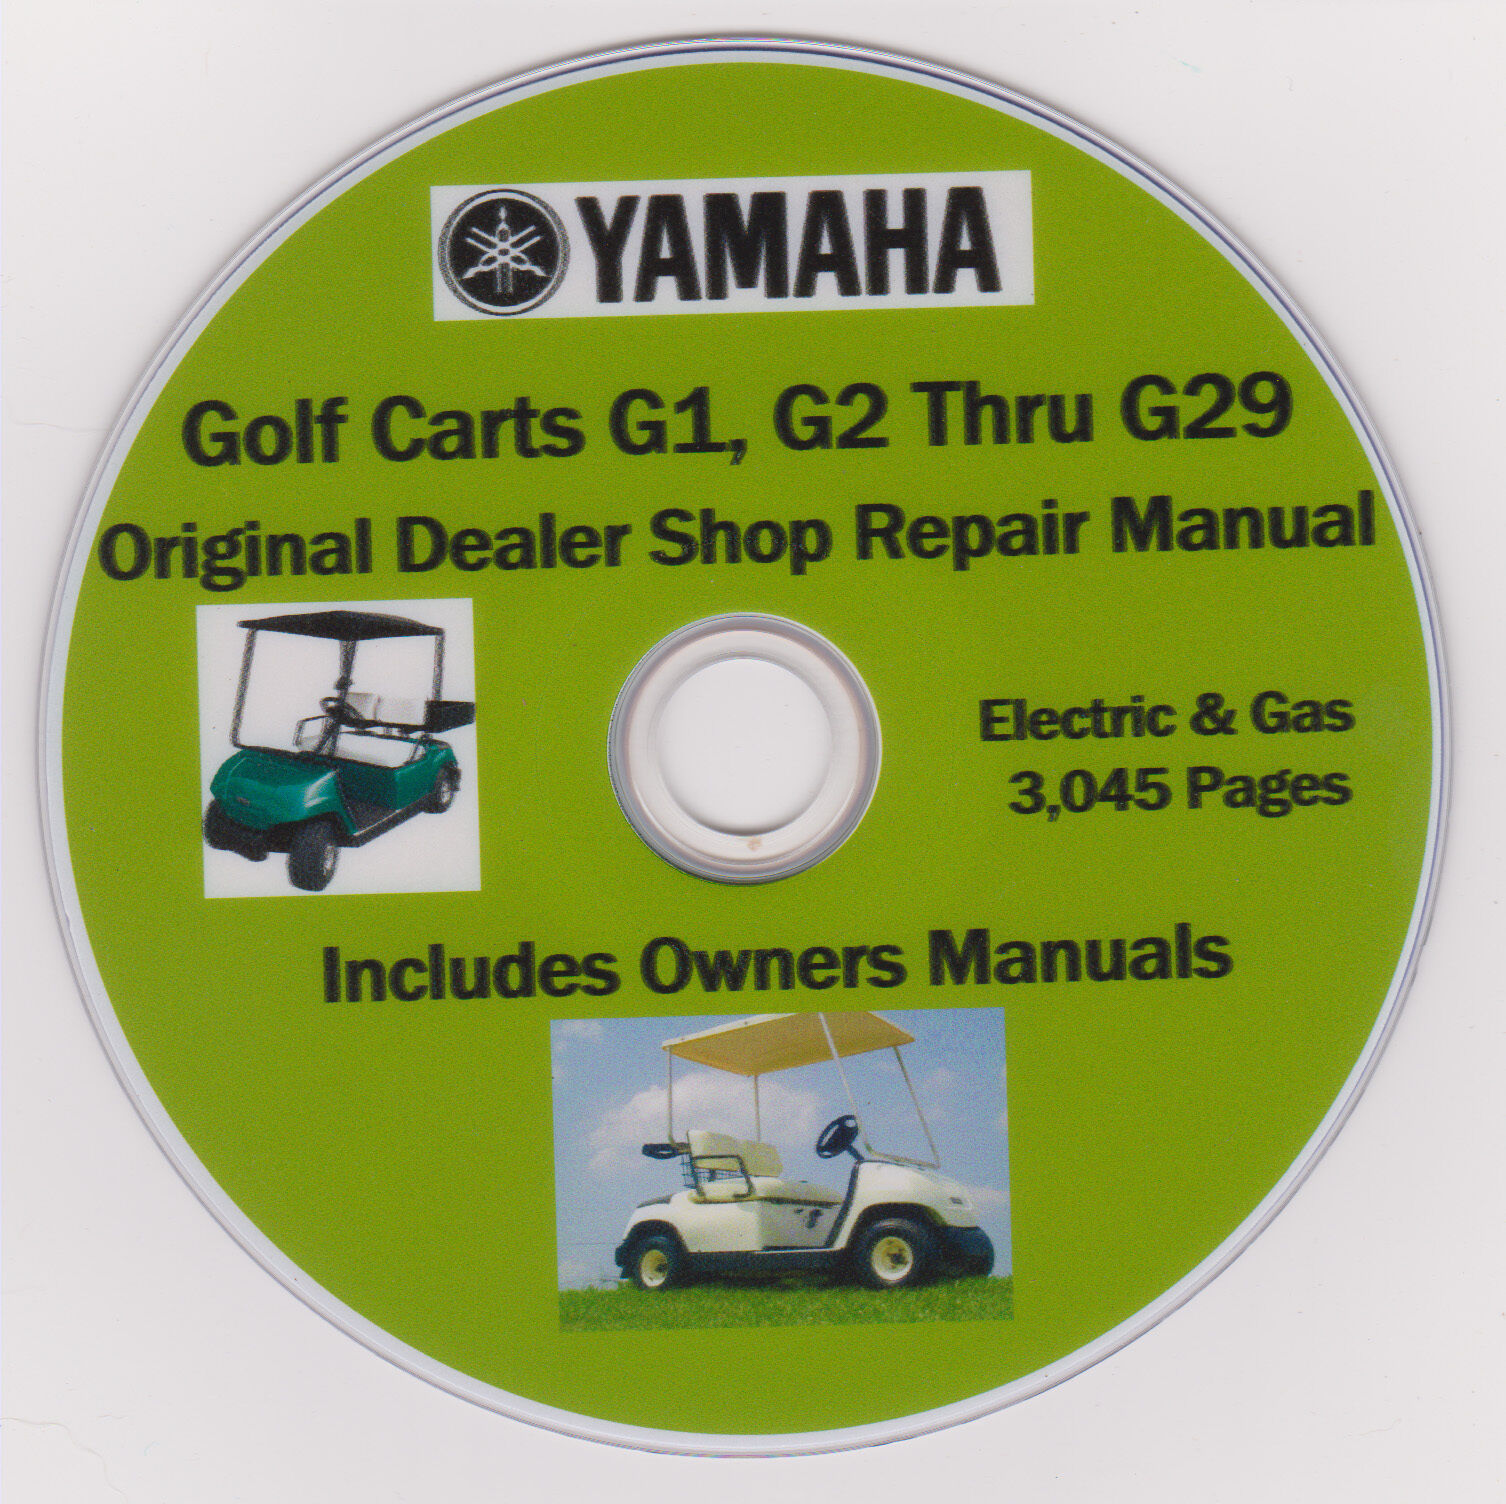 yamaha golf cart g1 thru g29 factory service repair shop rh picclick com Yamaha Drive Golf Cart Manual Yamaha Gas Golf Cart Governor